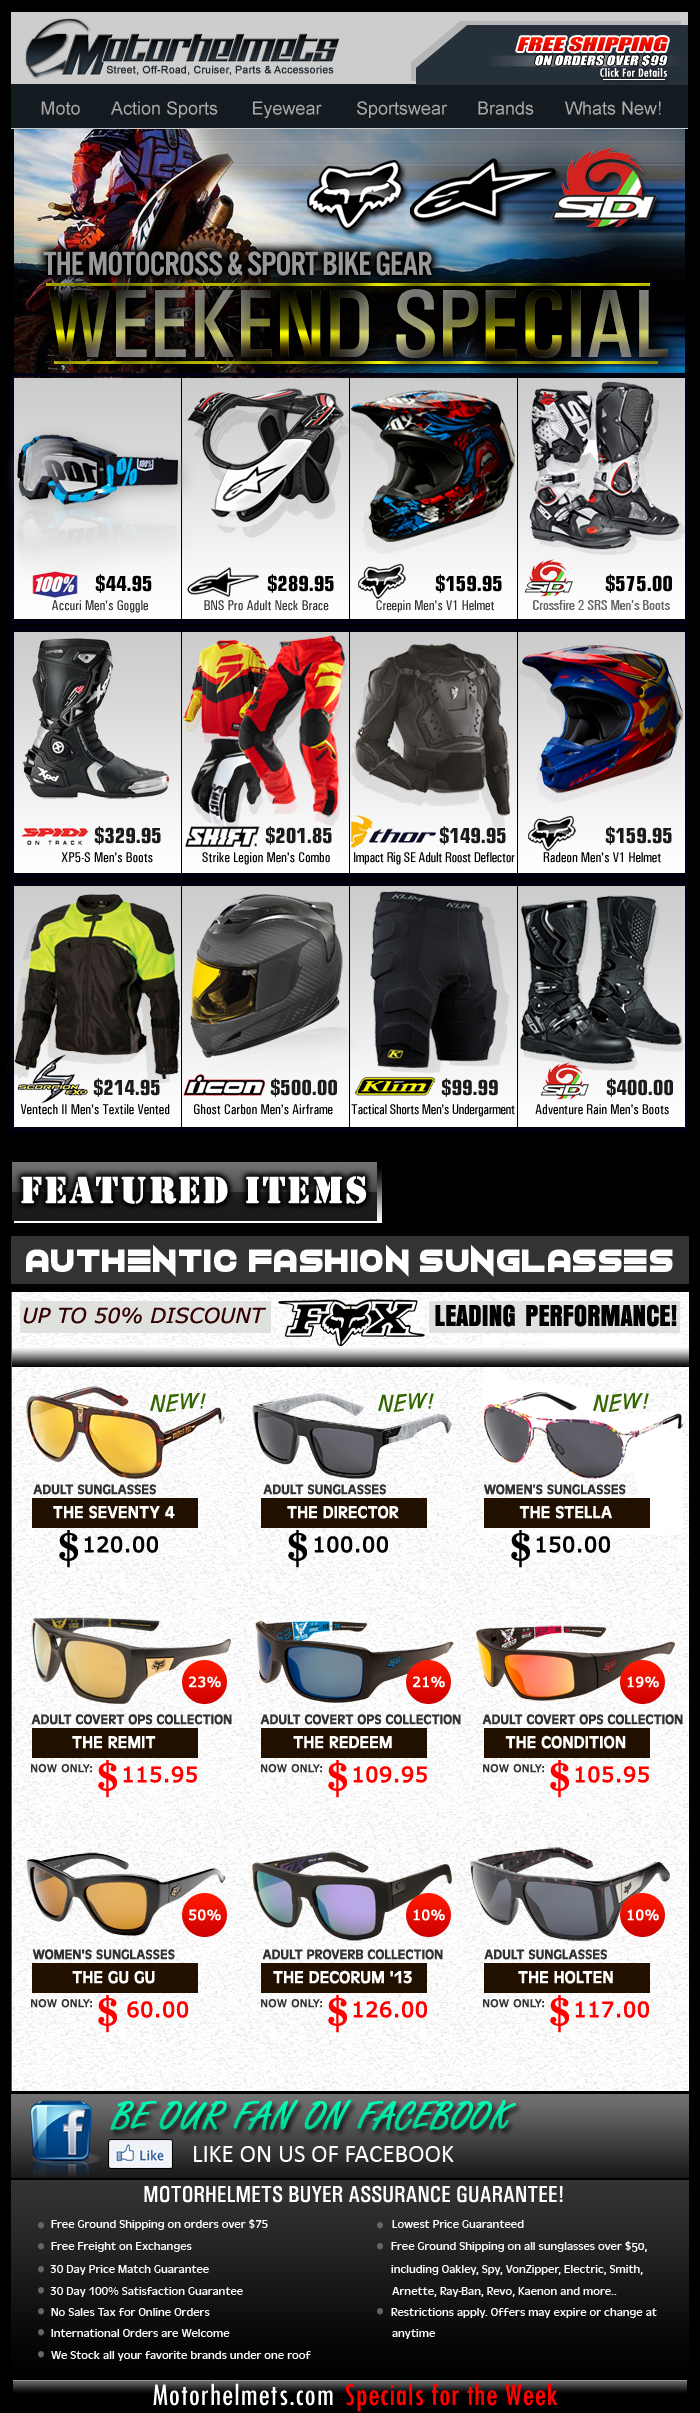 Weekend Specials...Premium Gear Selection from FOX, A-Stars, Scorpion and more!